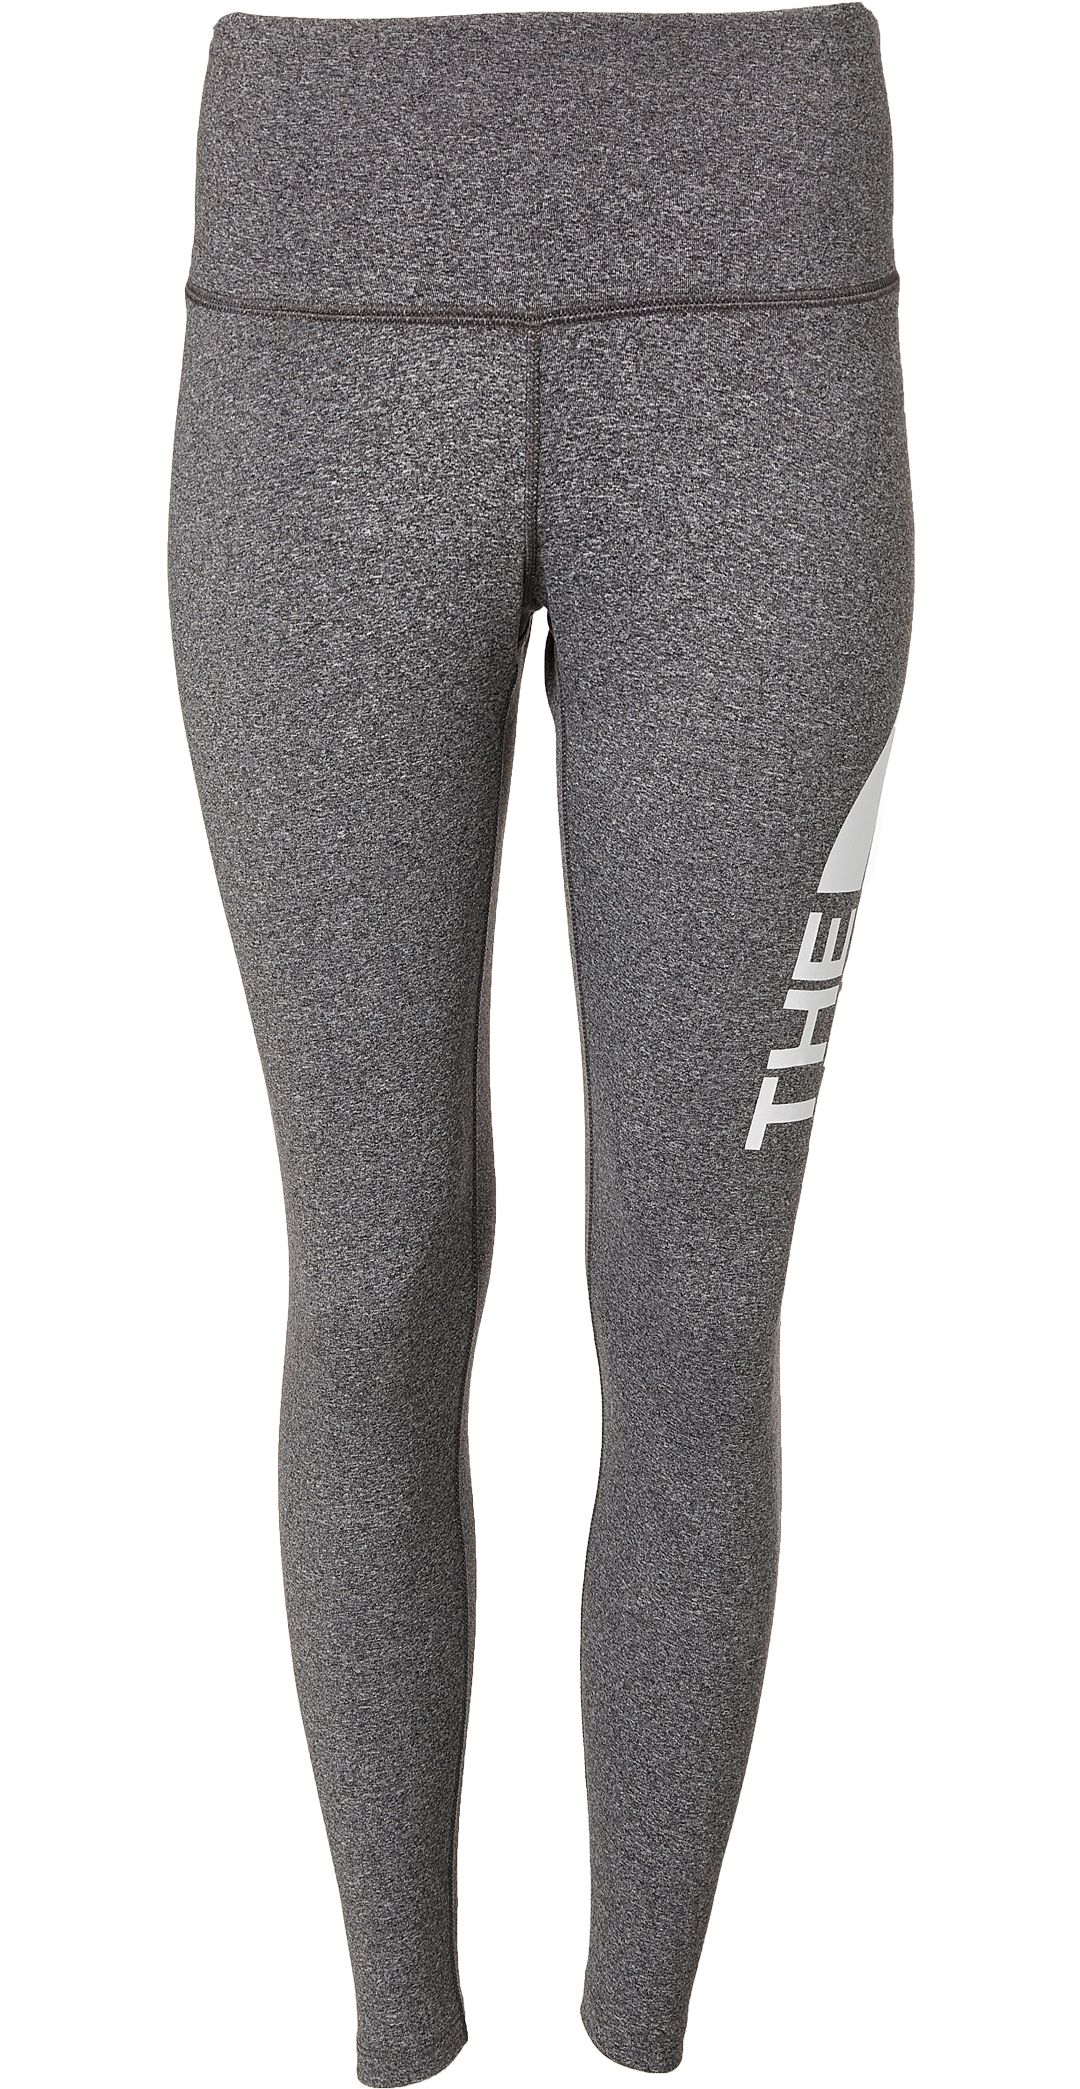 new styles 50% off special price for The North Face Women's Metro Logo Leggings